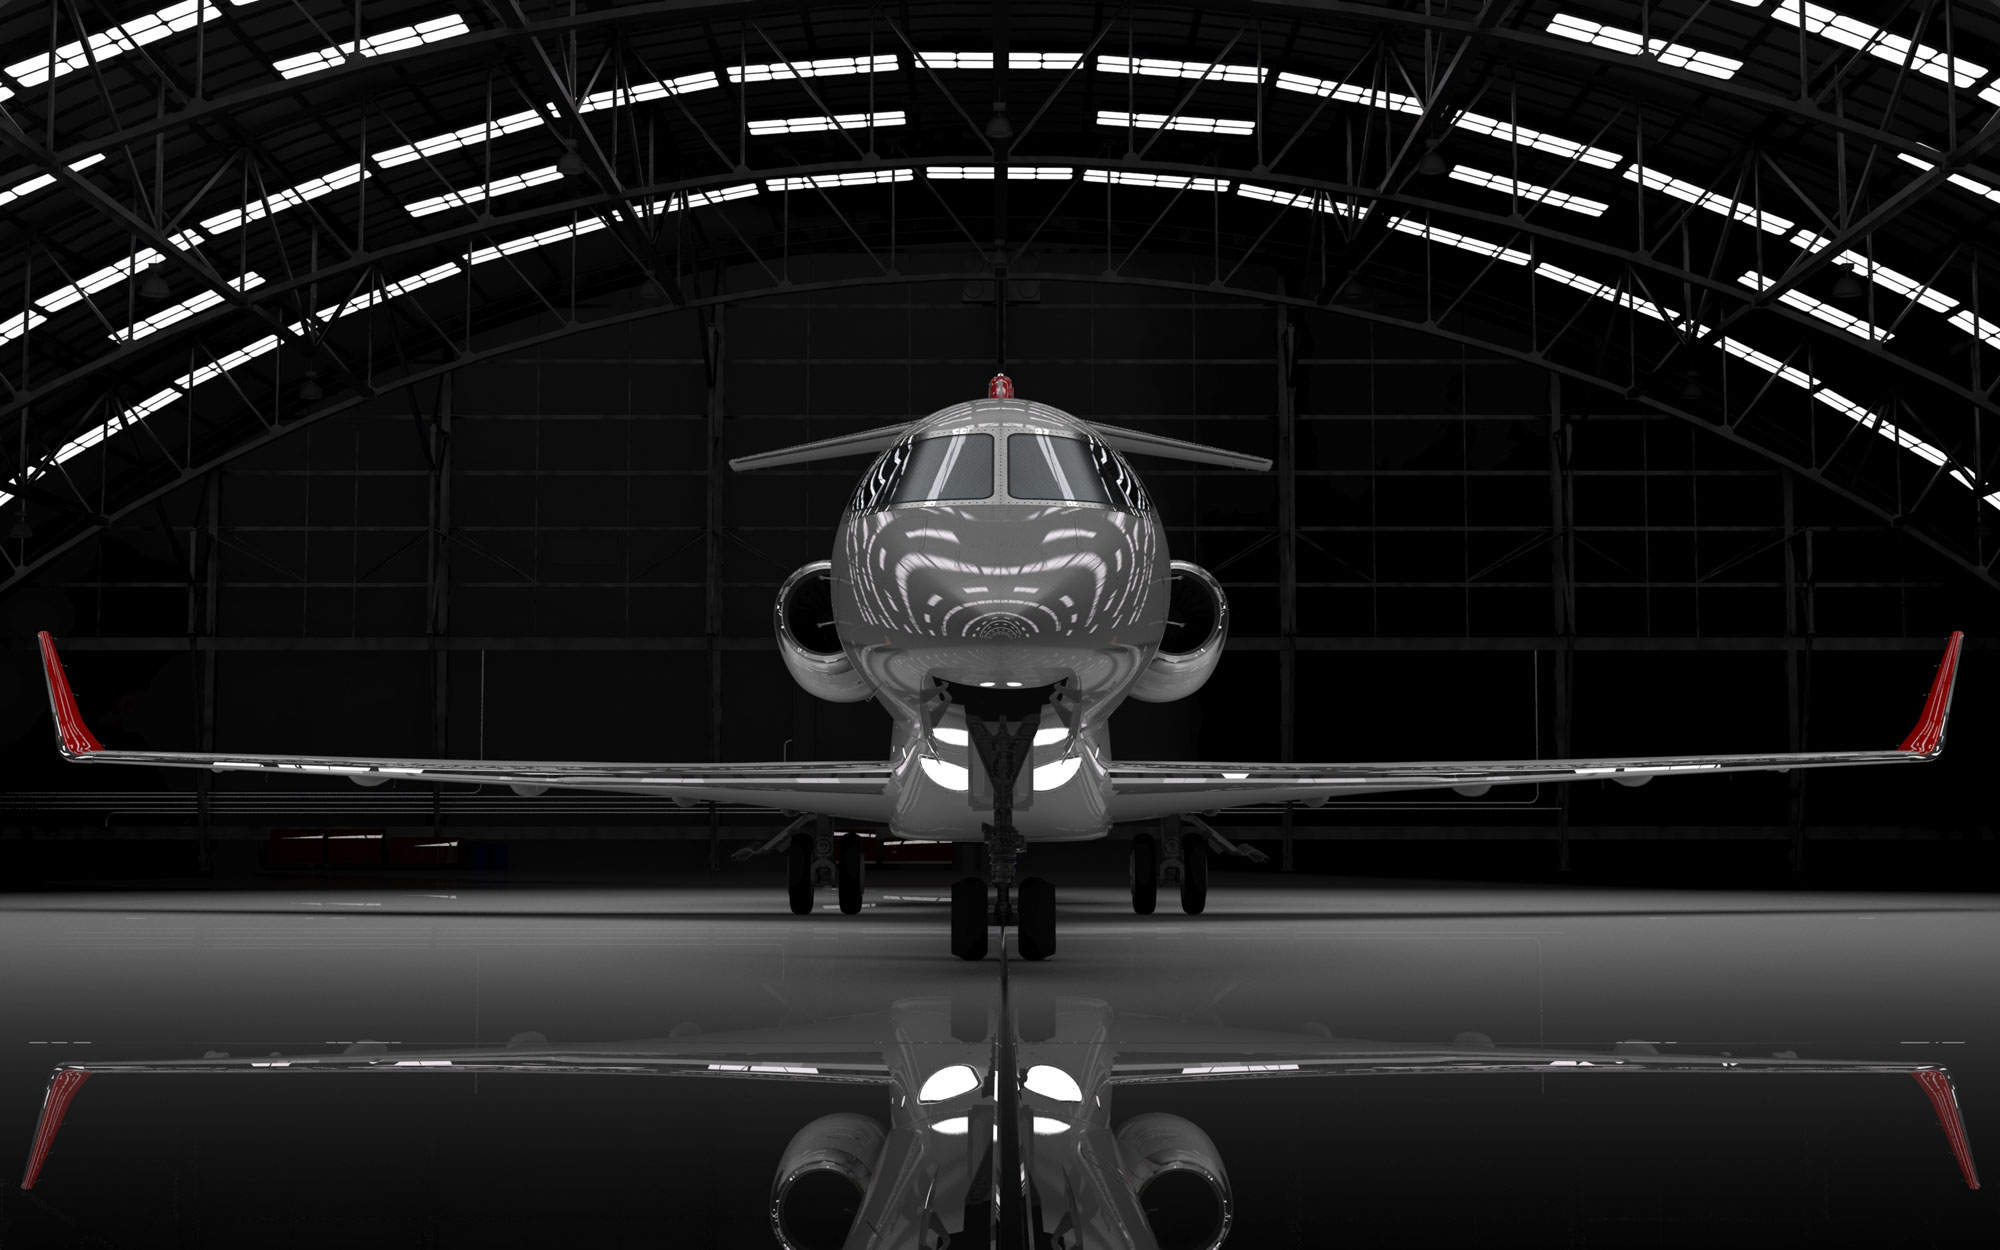 Learjet-85-in-hangar21